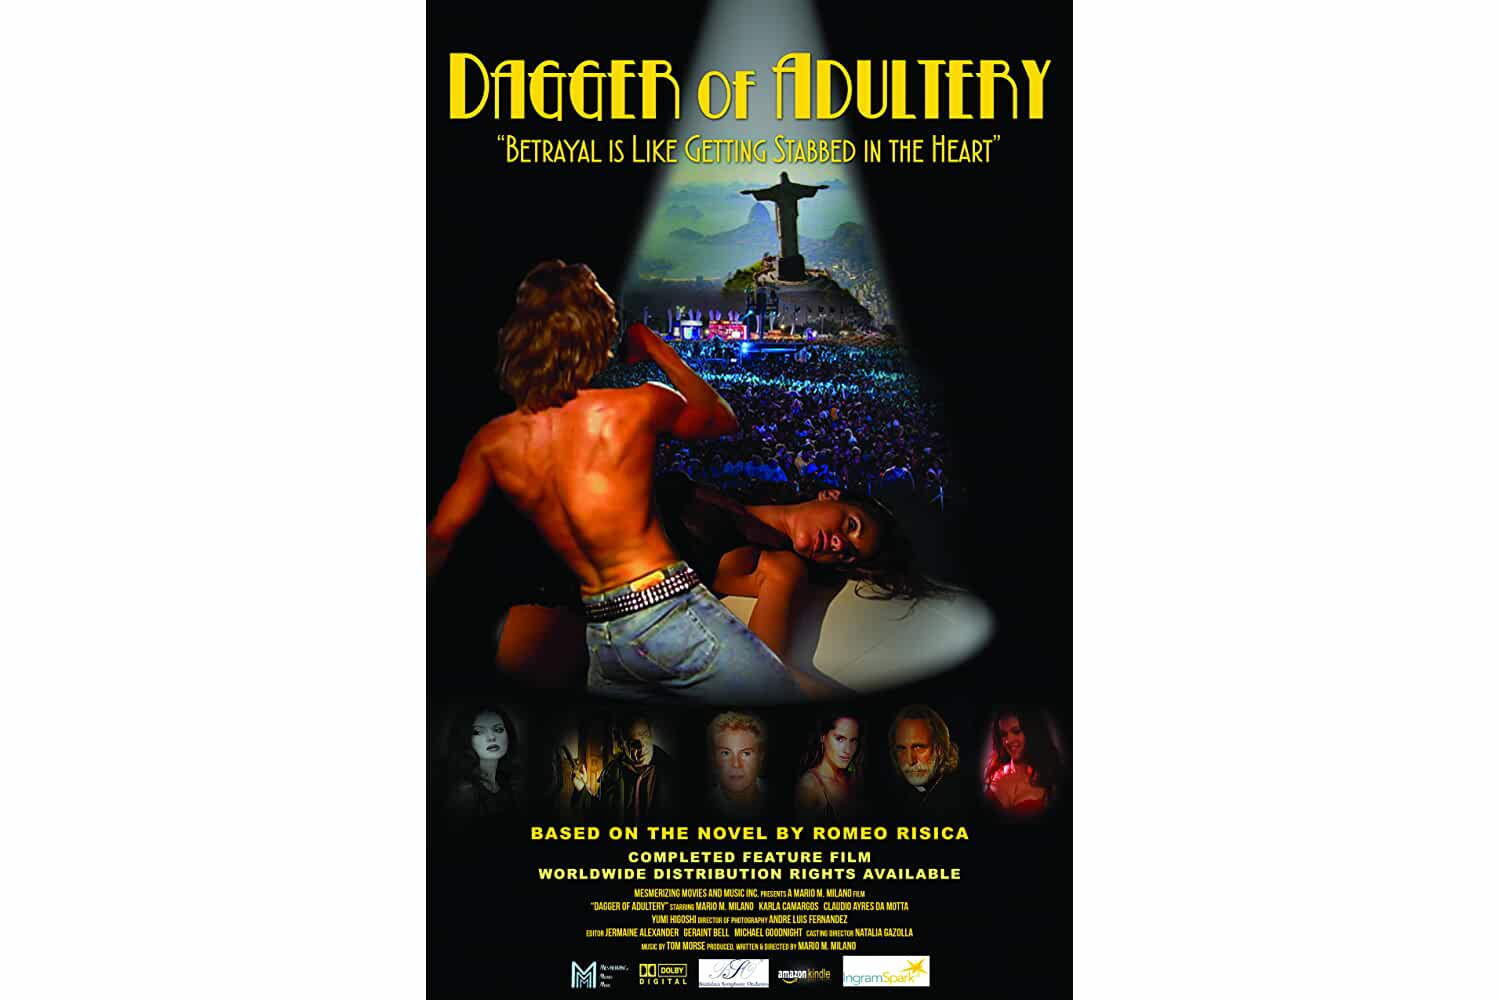 Dagger of Adultery (2018)